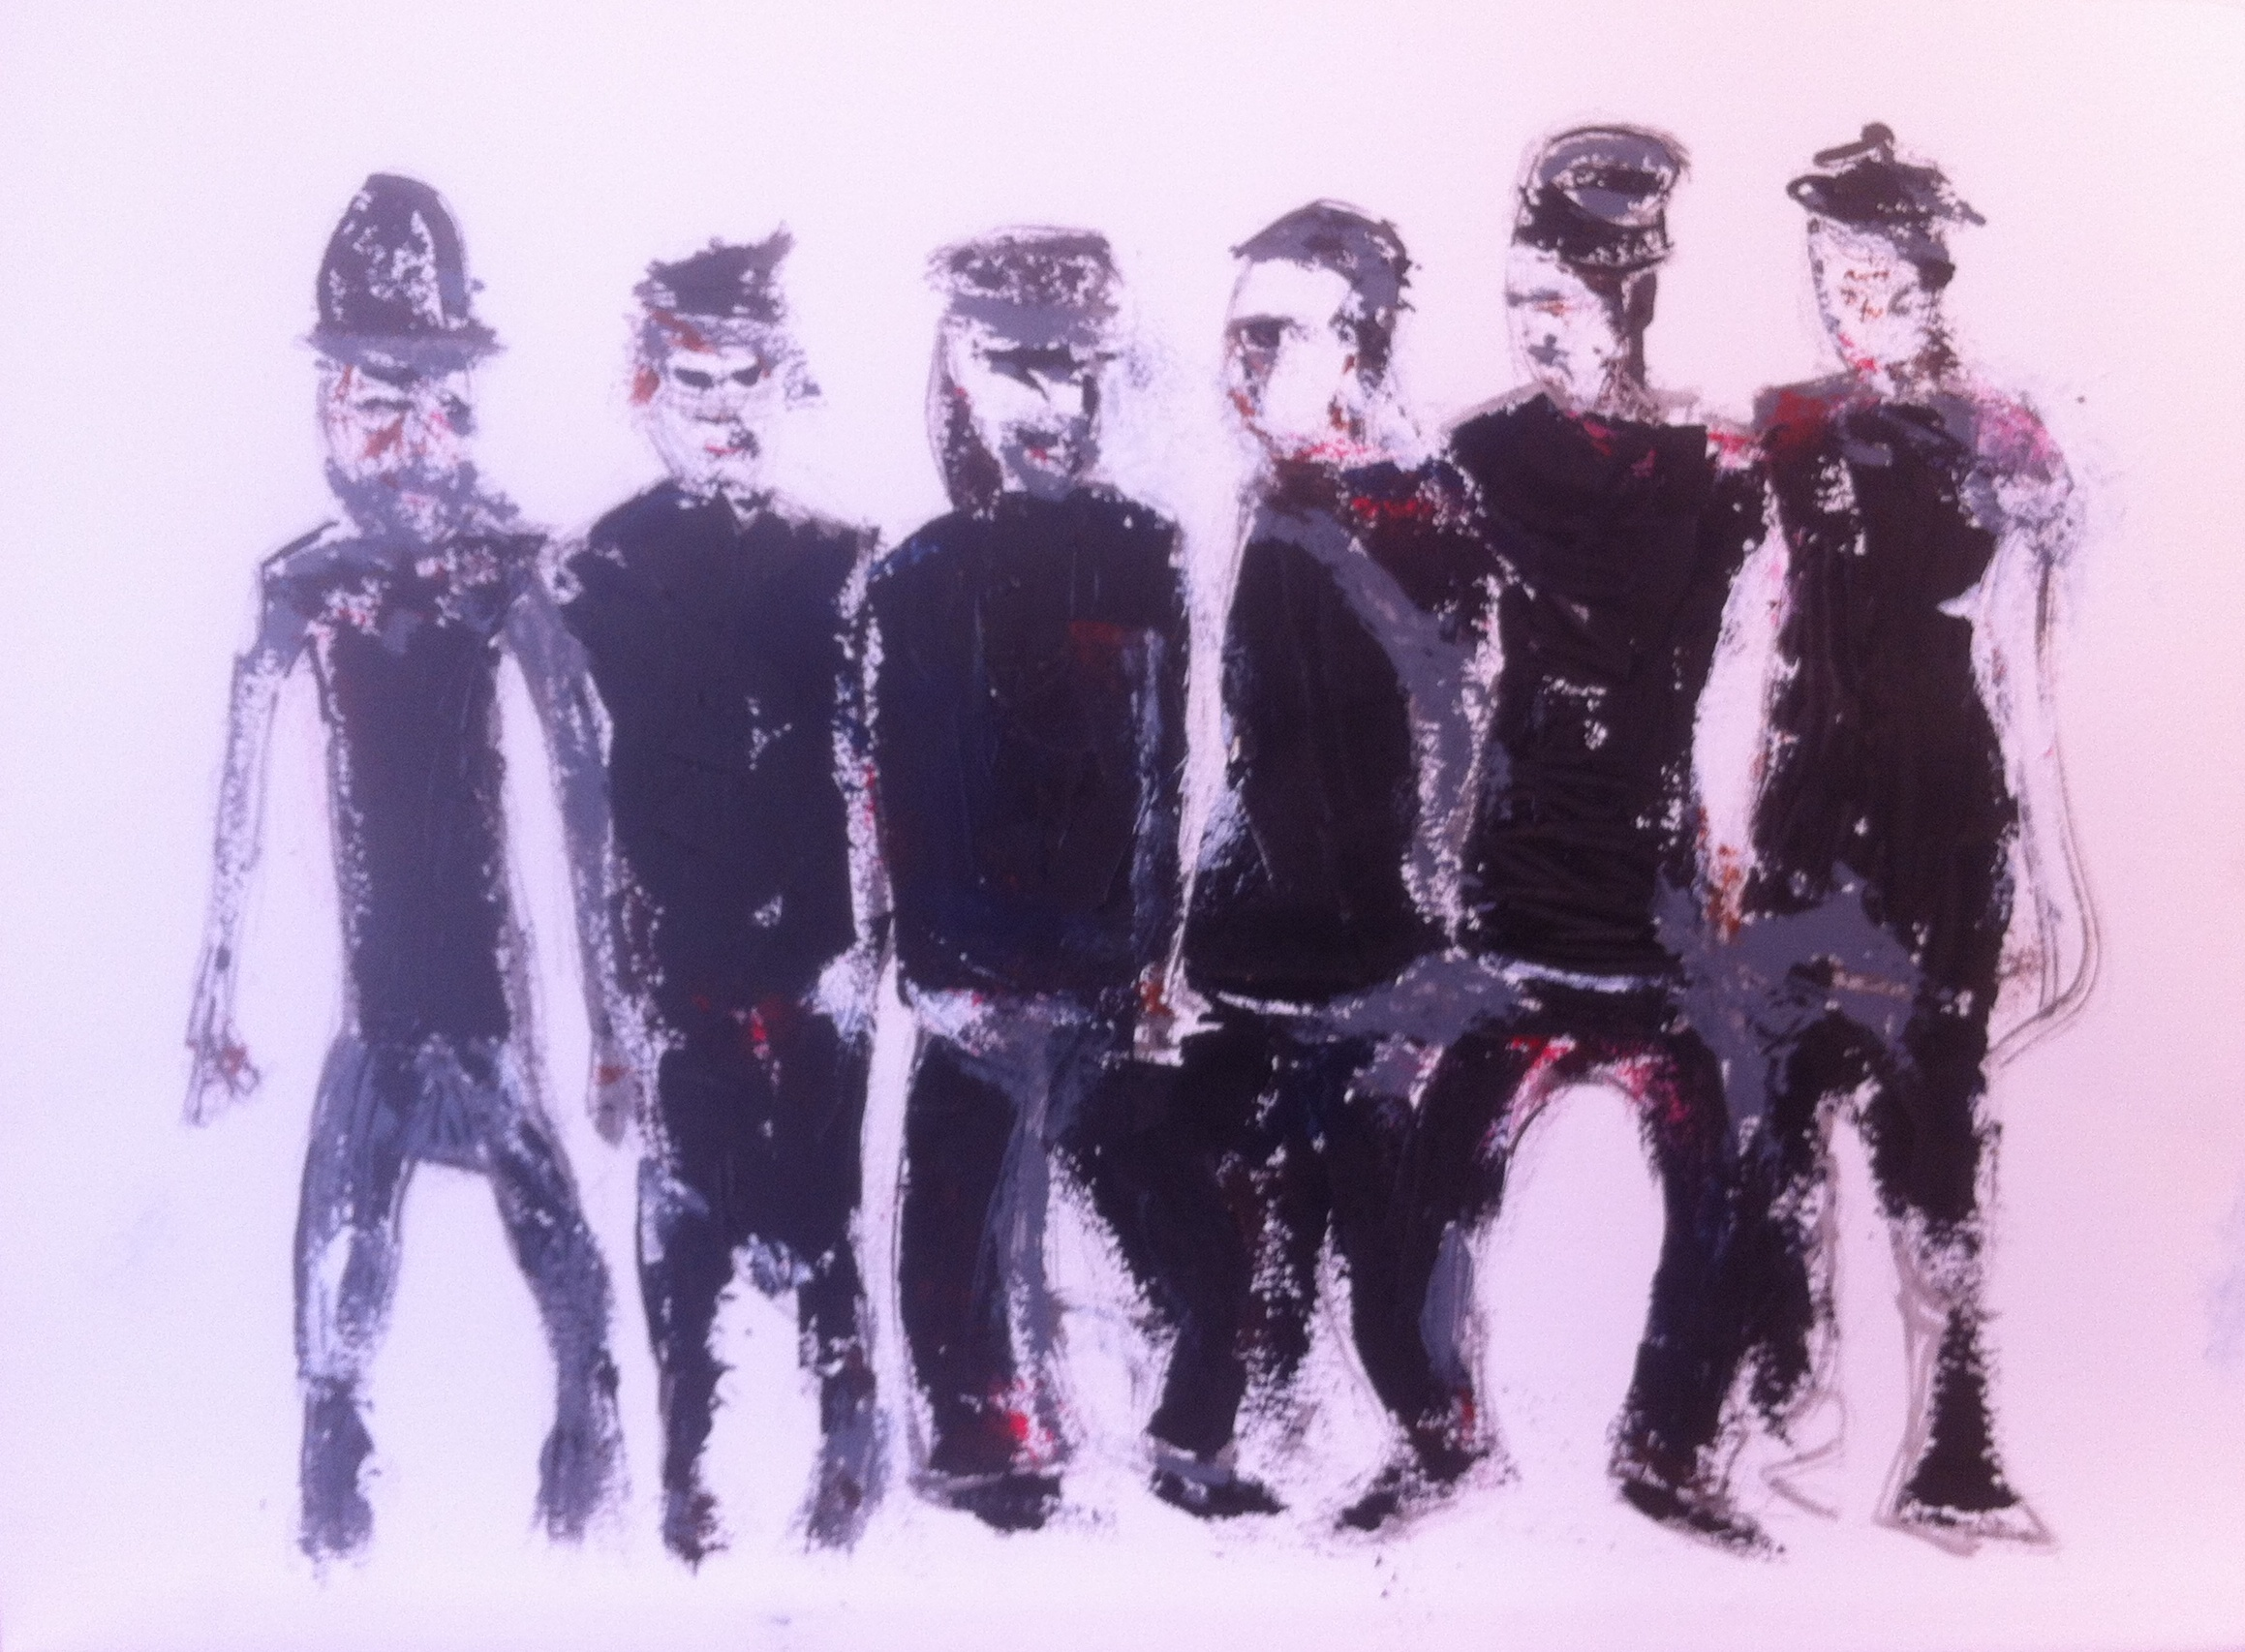 N° 1555 - Urban warriors - Acrylique sur papier - 56 x 75 cm - 4 septembre 2014